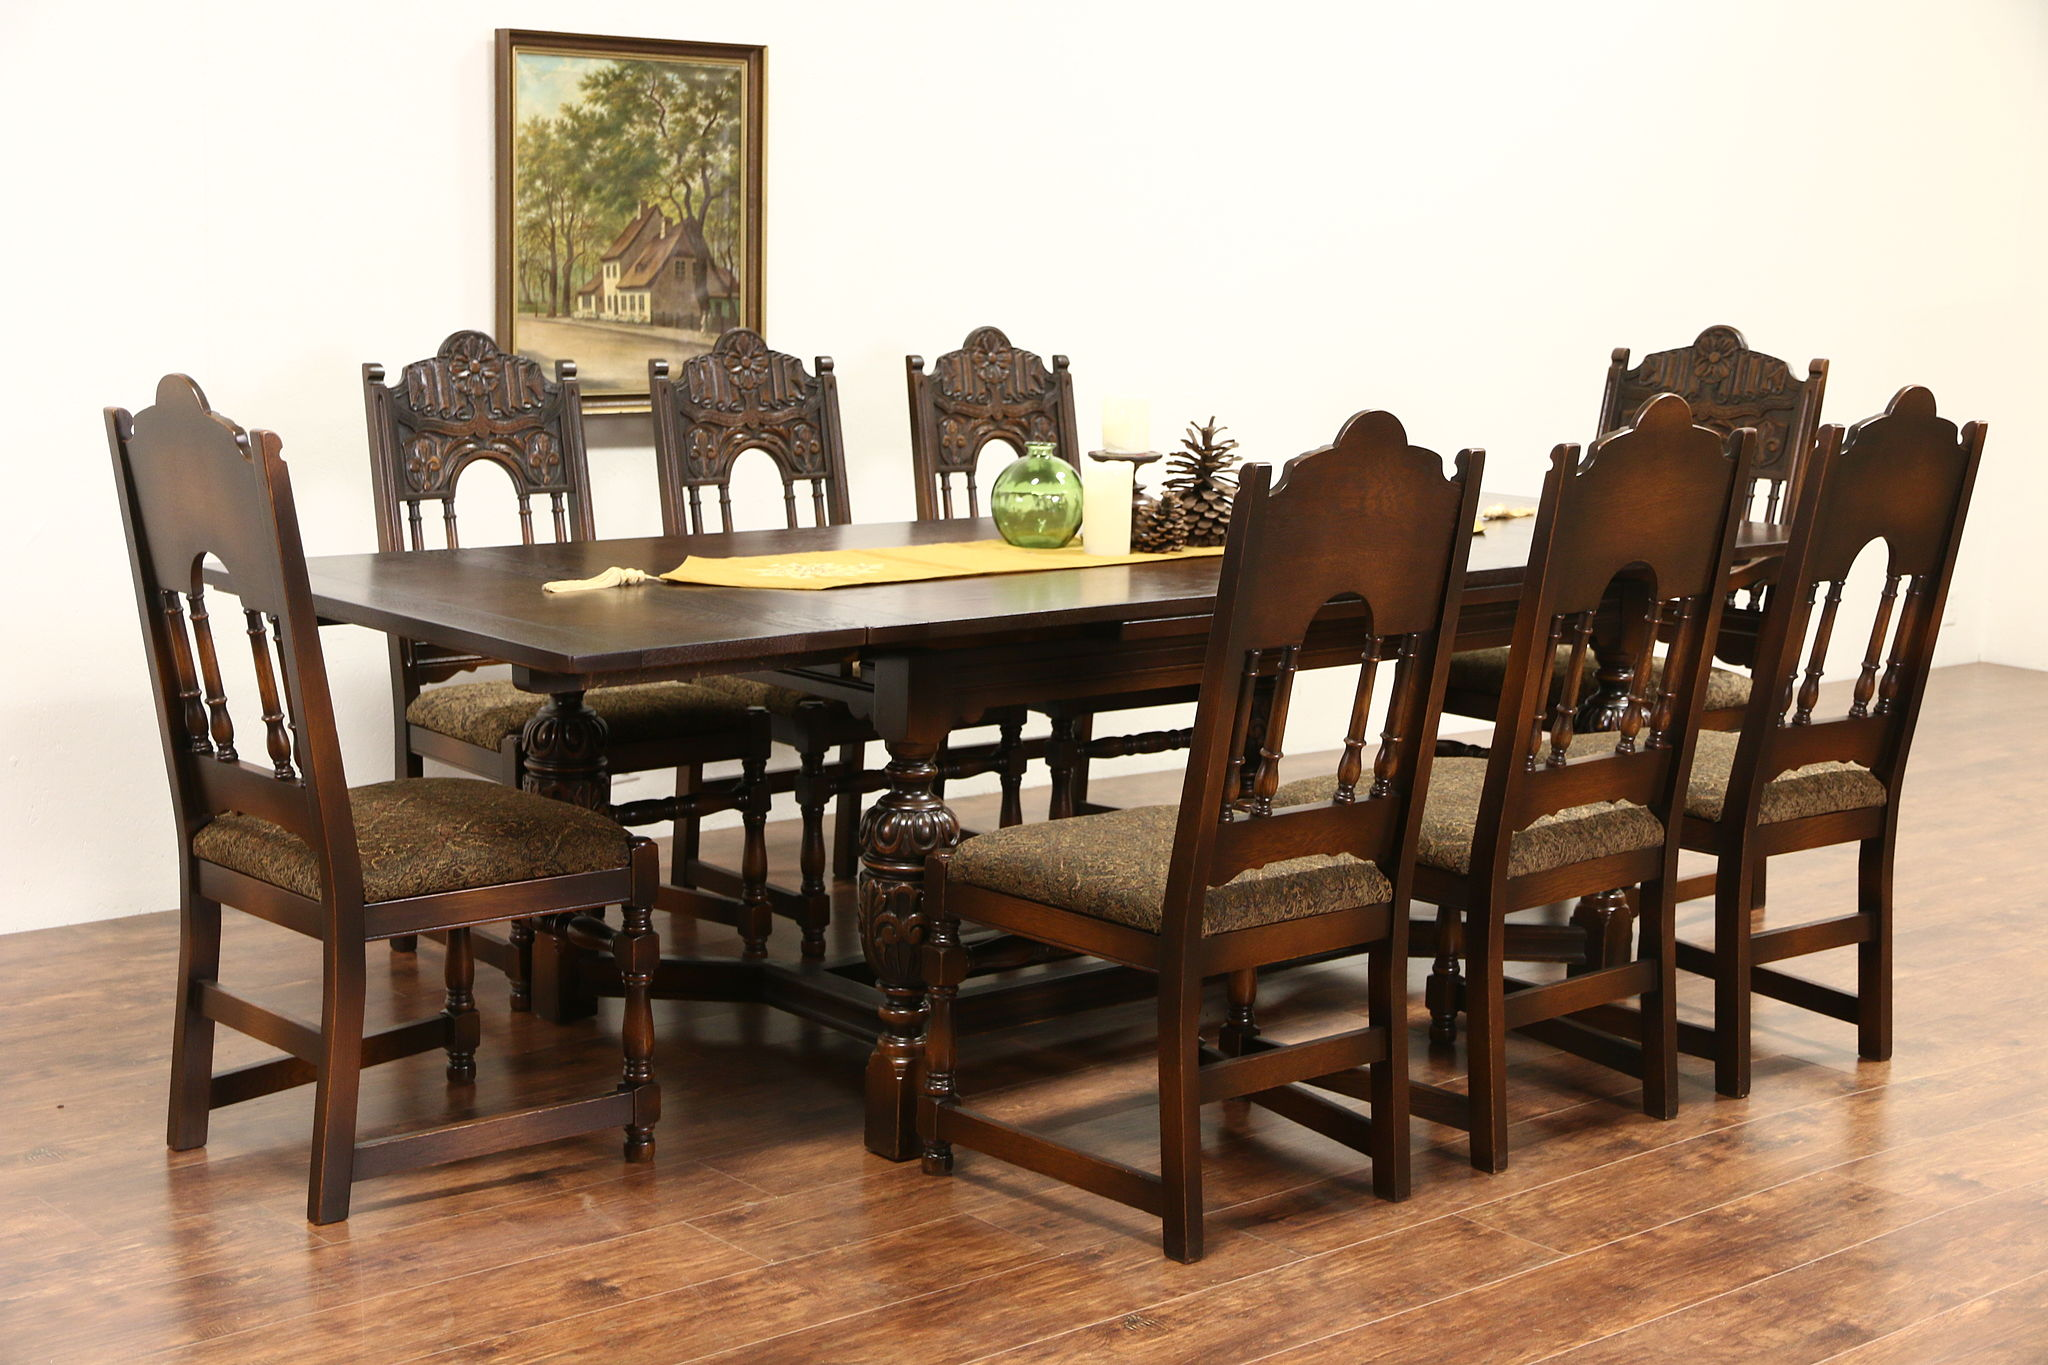 English tudor carved oak 1925 antique dining set table 8 chairs